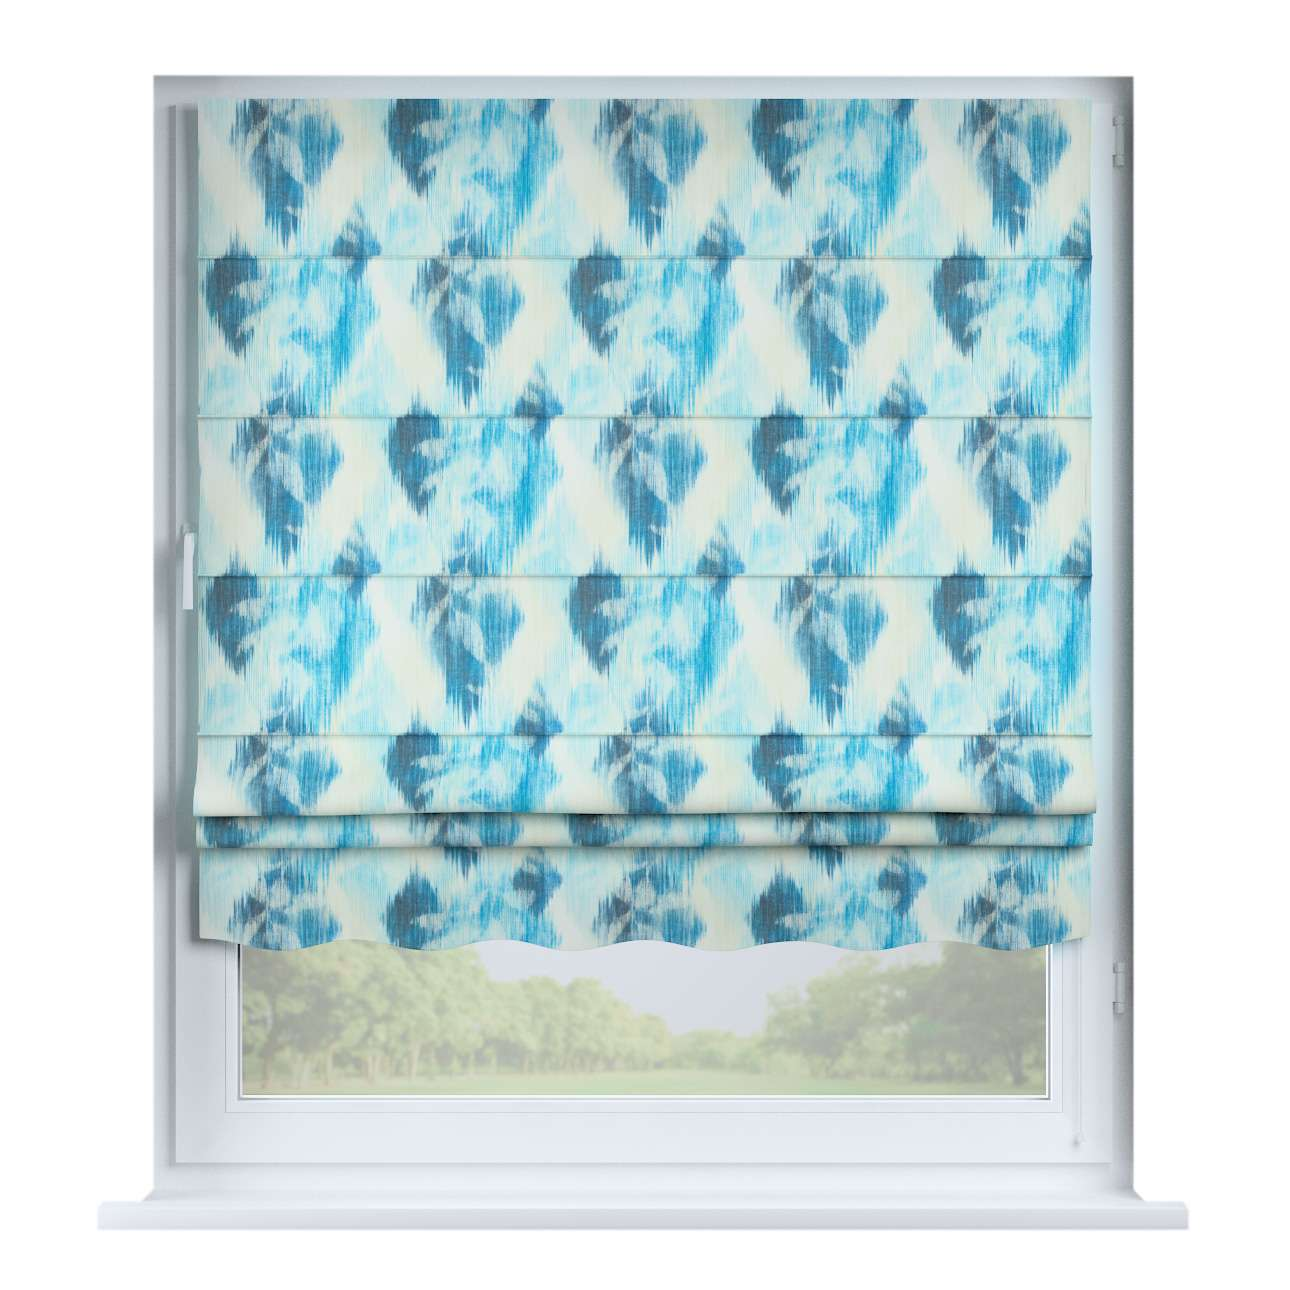 Florence roman blind  80 x 170 cm (31.5 x 67 inch) in collection Aquarelle, fabric: 140-71